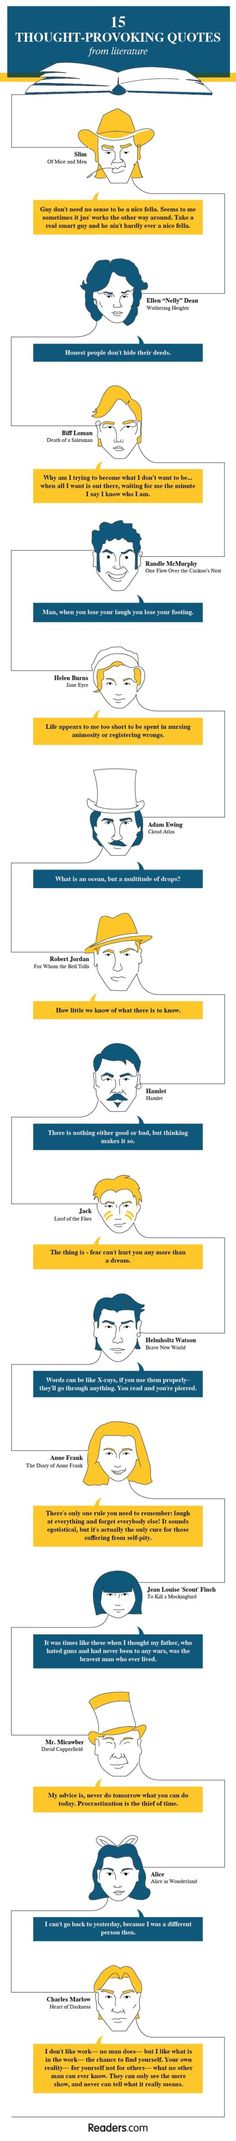 15 thought provoking quotes from literature (infographic)